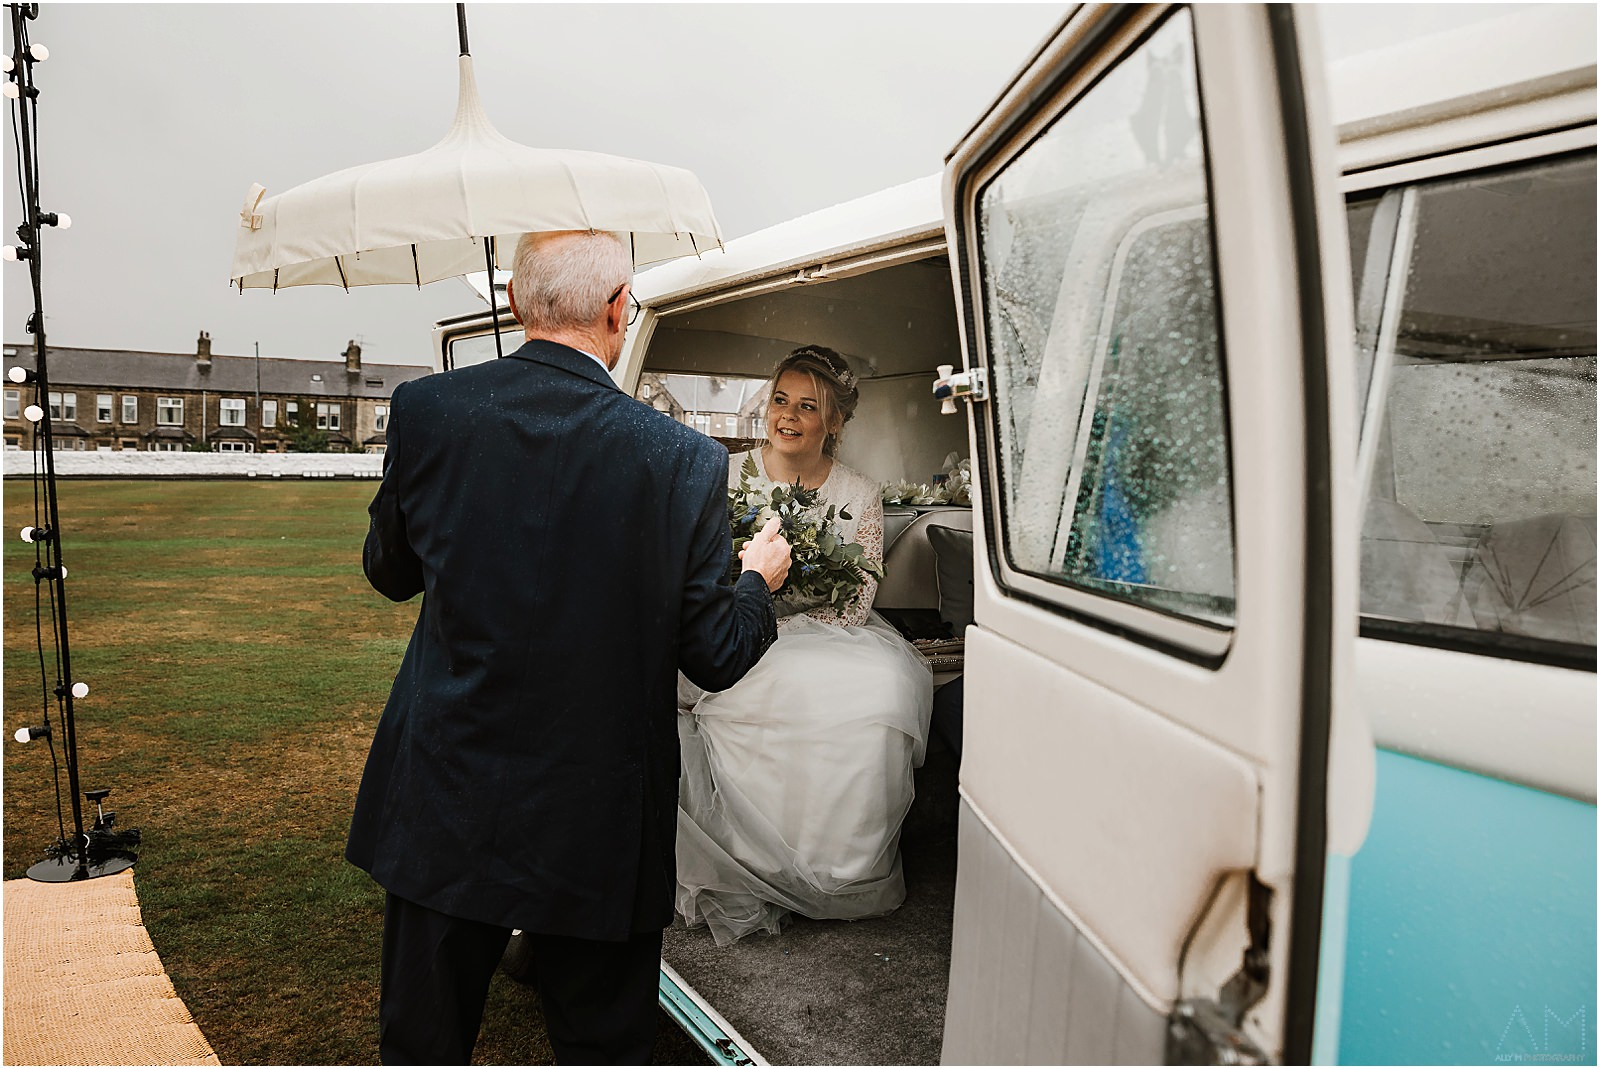 Bride arriving at wedding in campervan